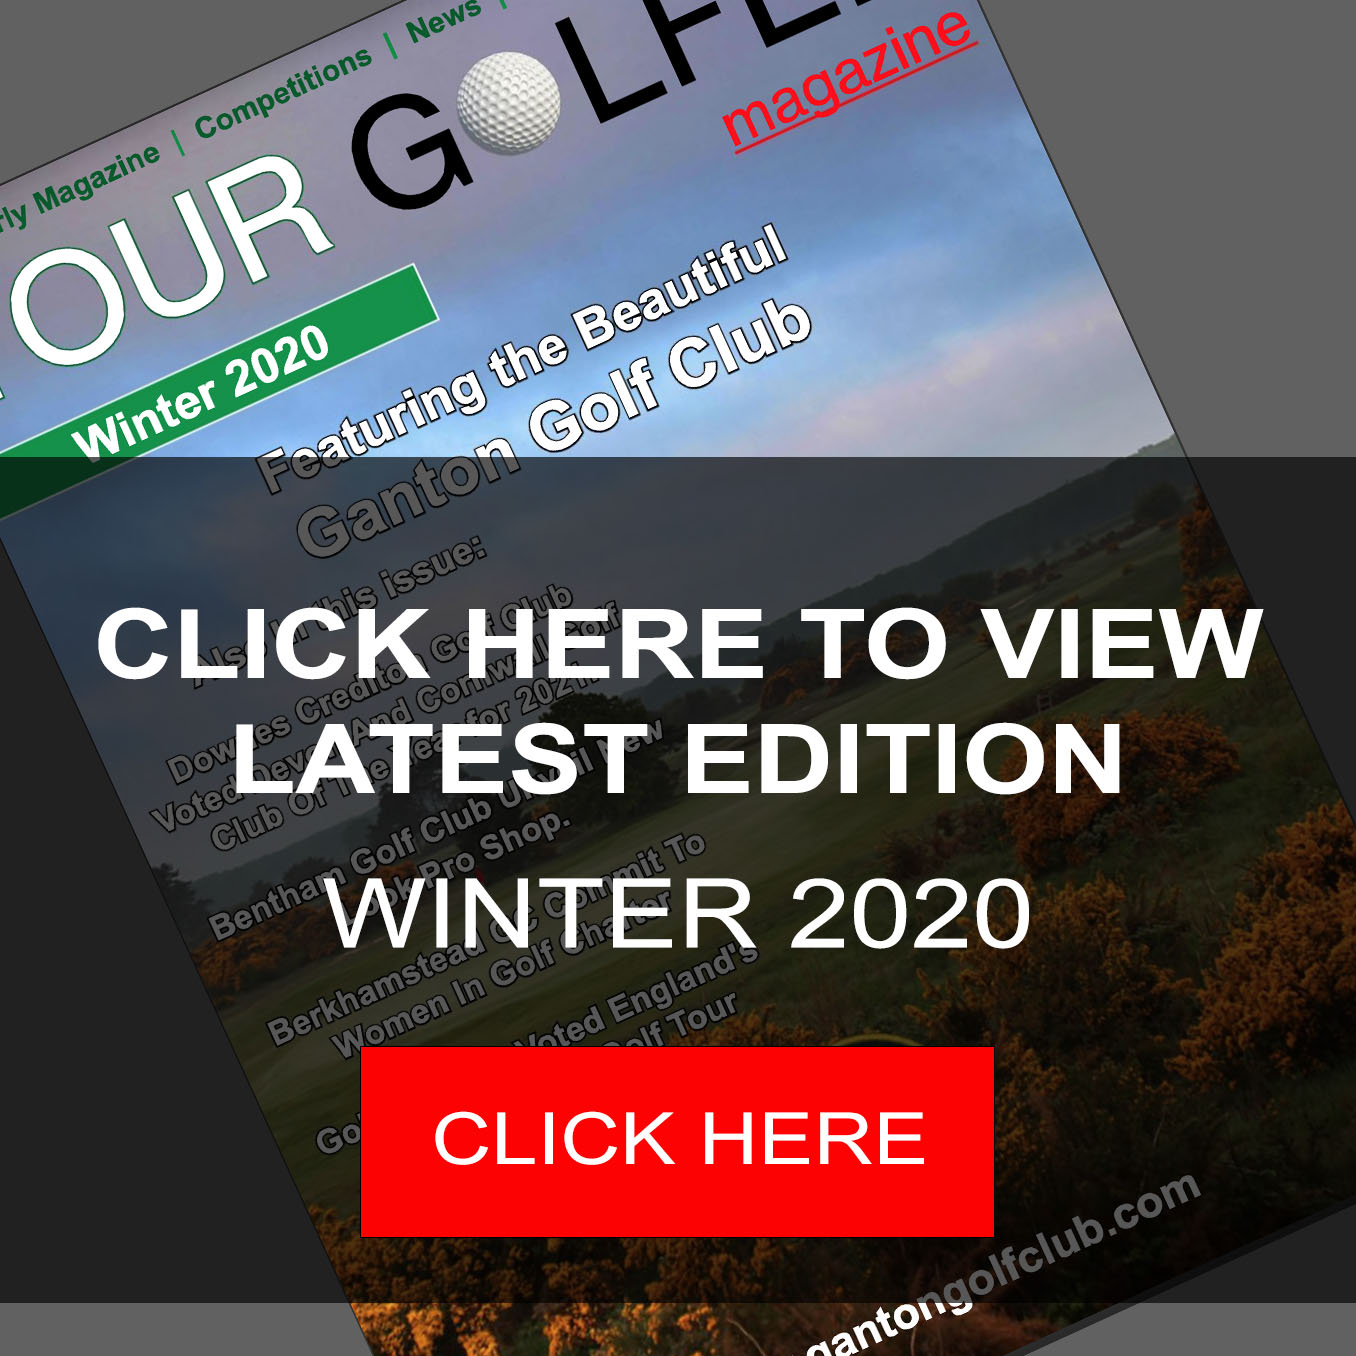 Your Golfer Magazine Latest Edition Winter 2020